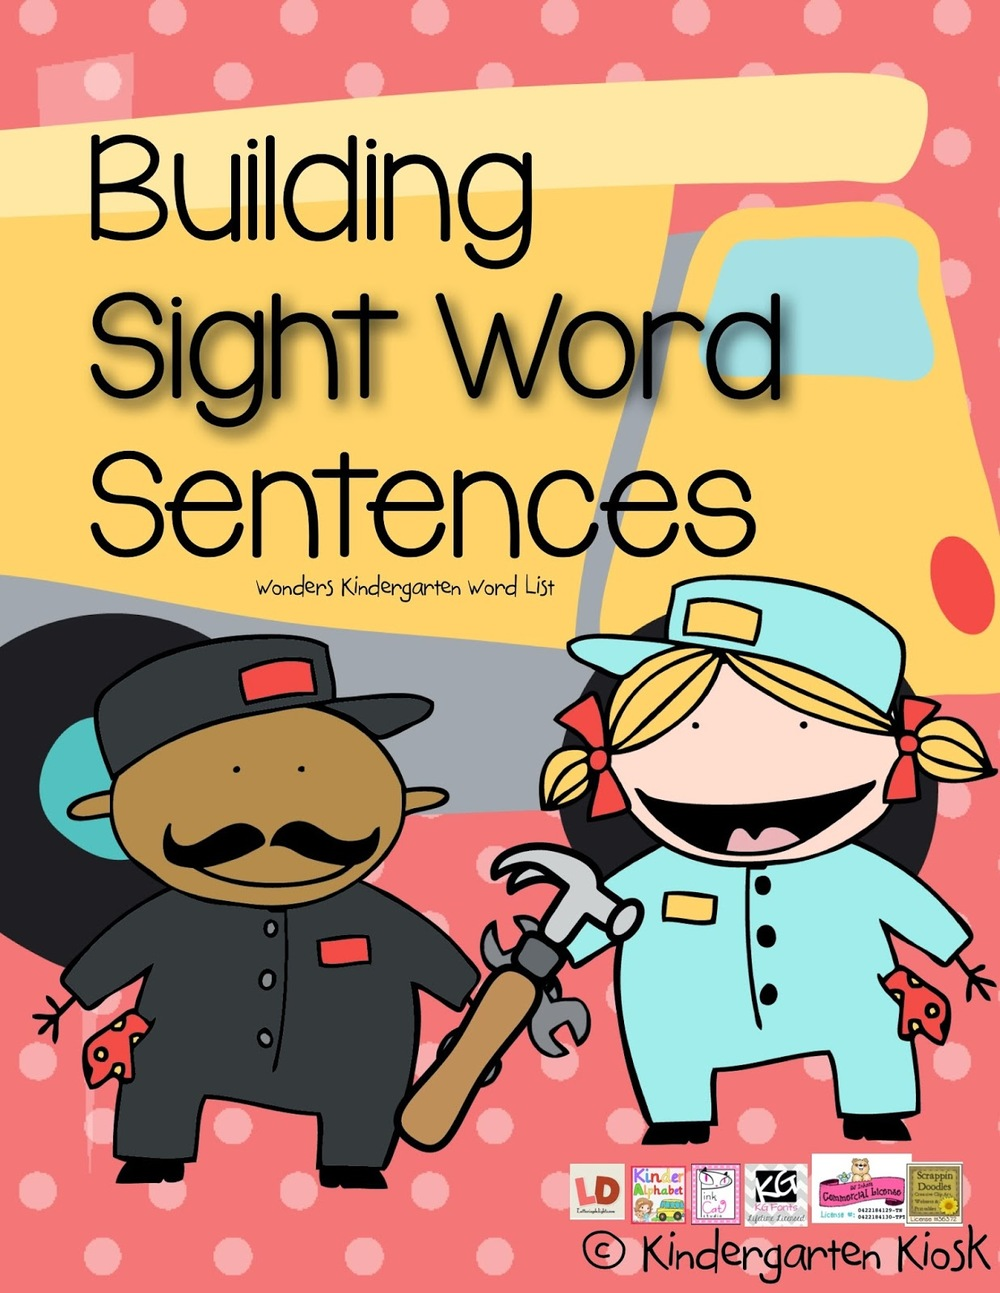 Kindergarten Sight Word Worksheets Kindergarten Kiosk